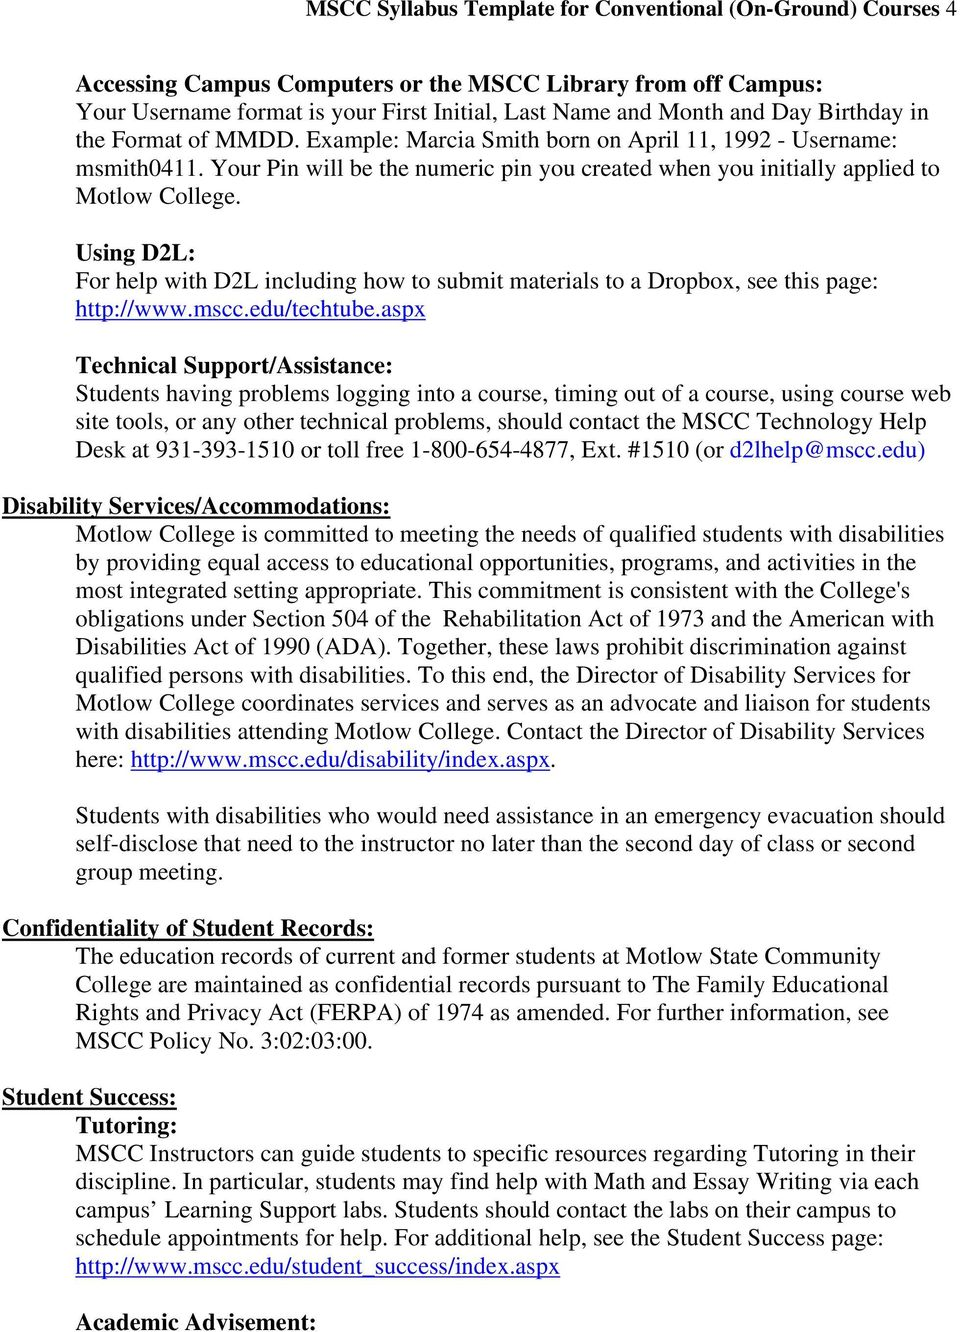 Using D2L: For help with D2L including how to submit materials to a Dropbox, see this page: http://www.mscc.edu/techtube.